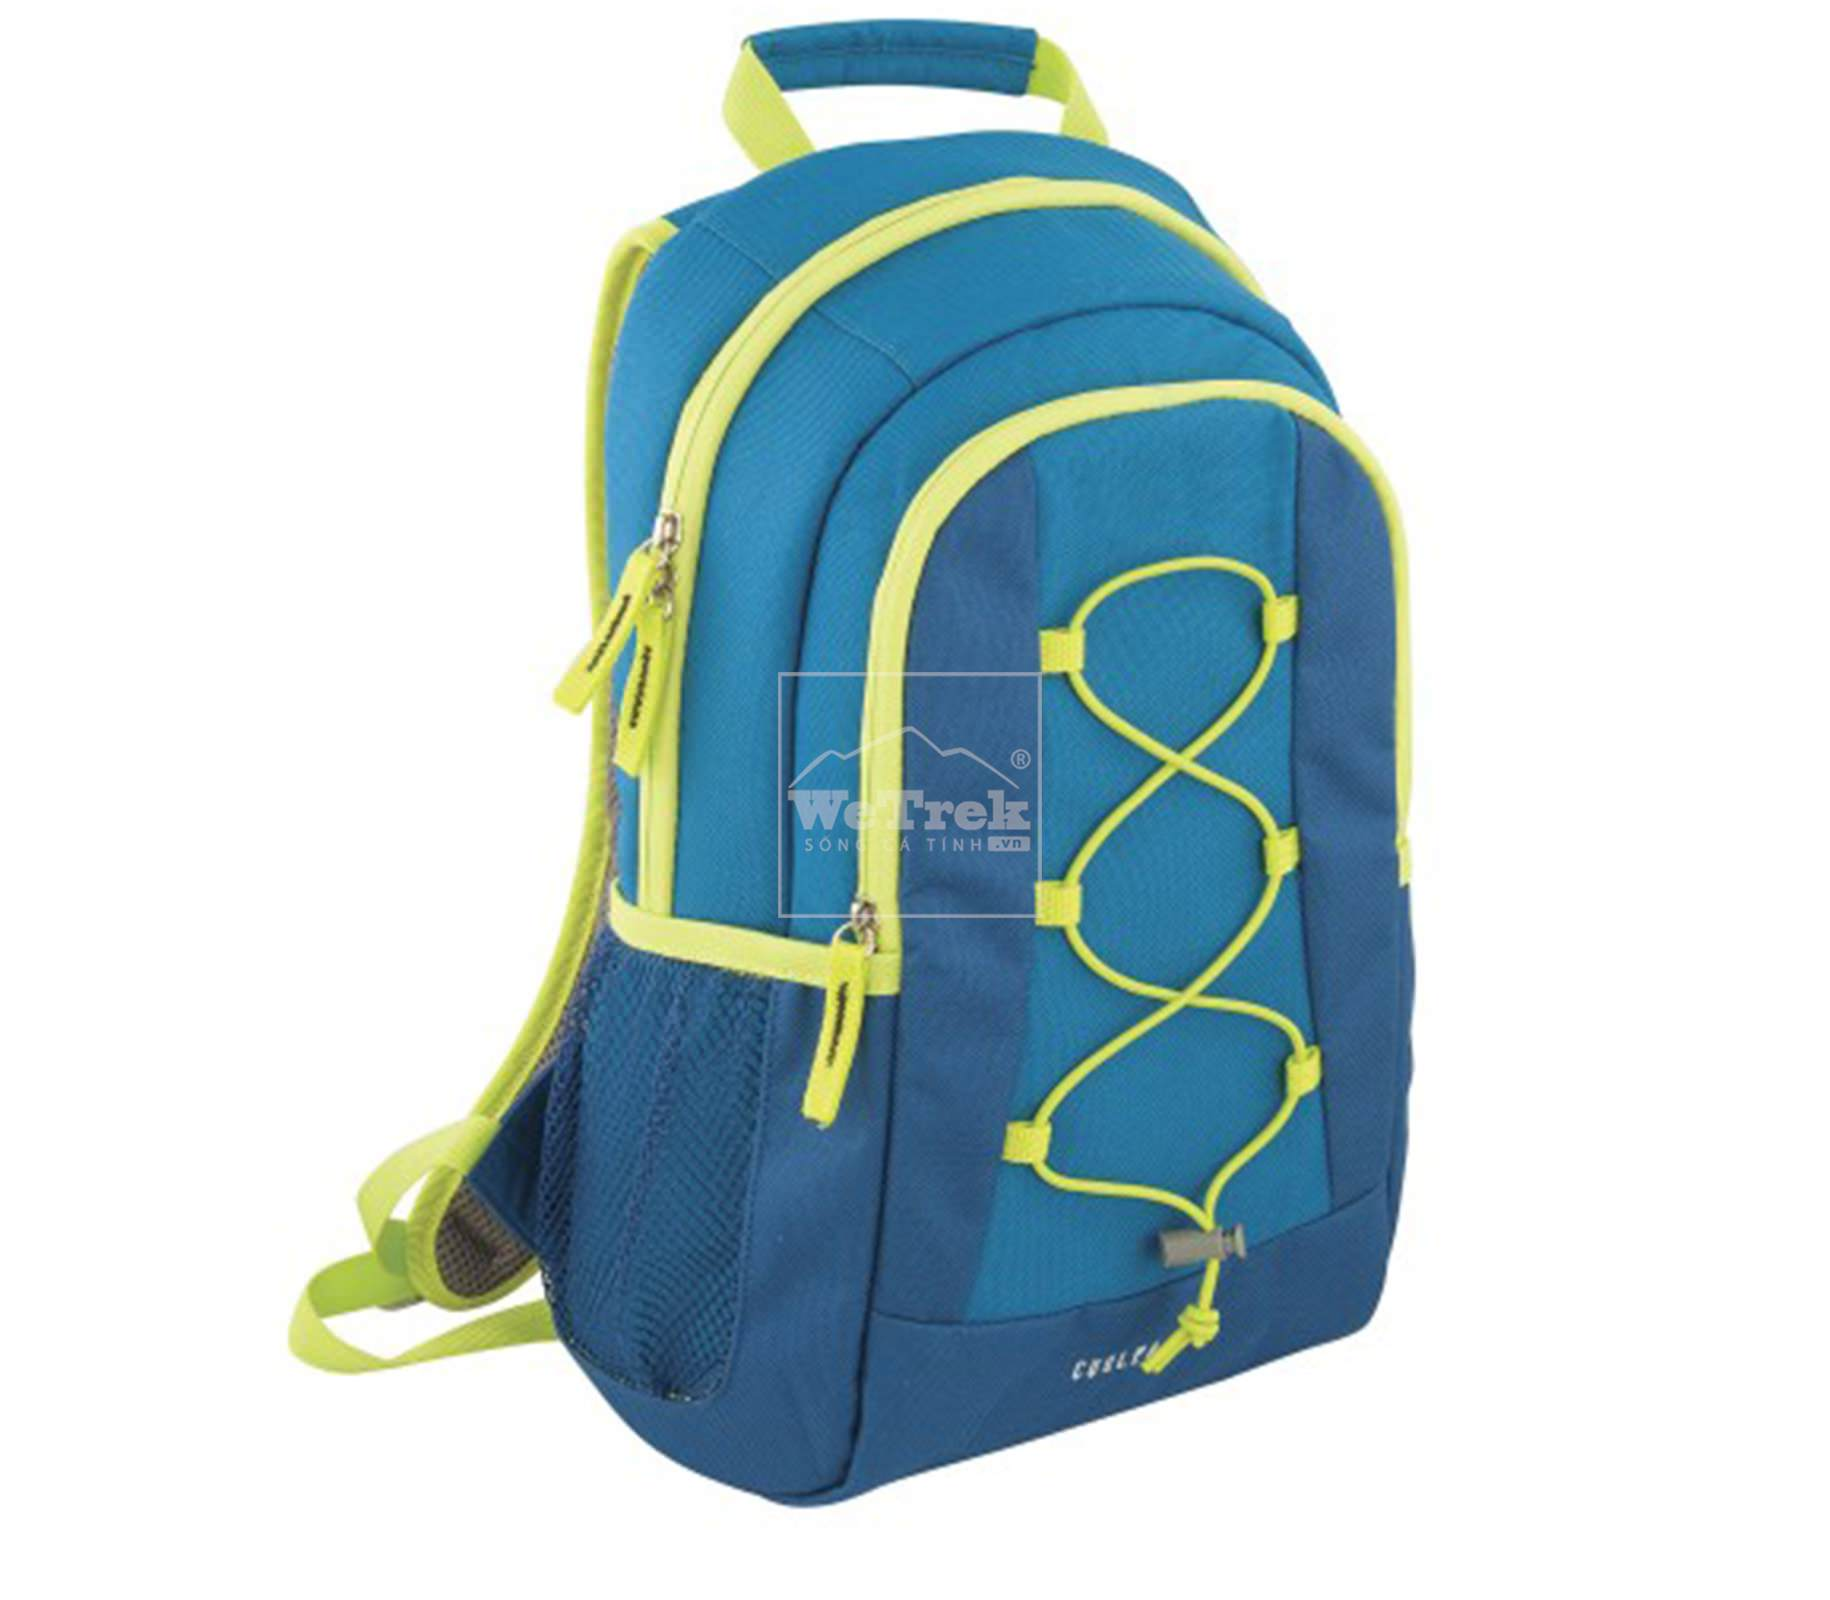 Balo giữ lạnh 10L Coleman Cool Pack Blue 2000024609 - 7402